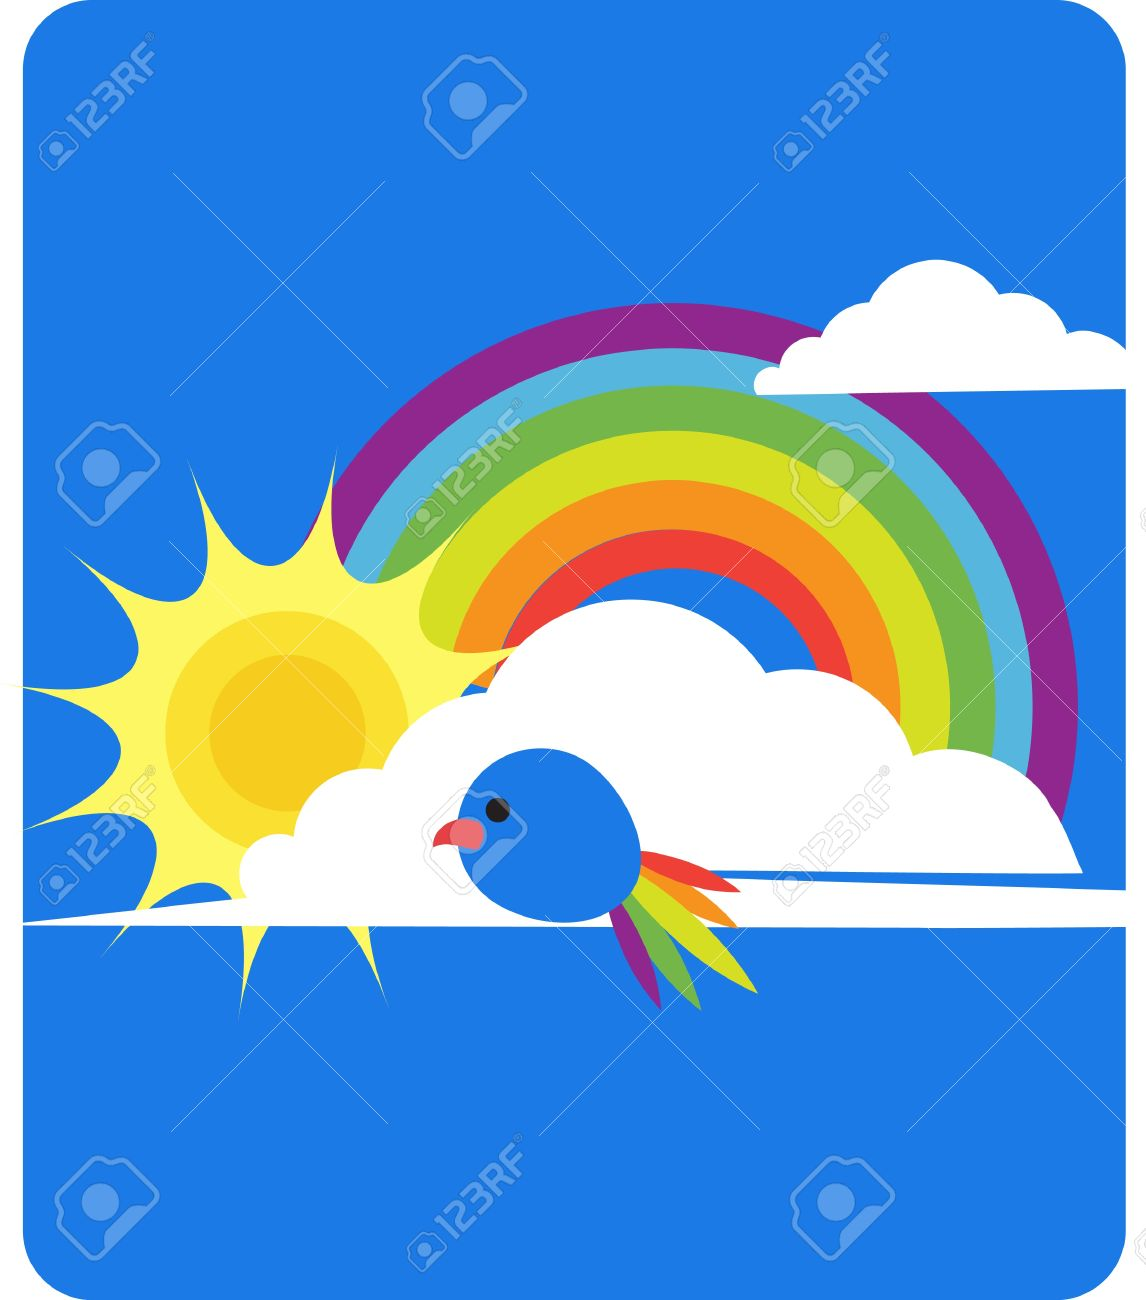 sky view of rainbow sun clouds and bird royalty free cliparts